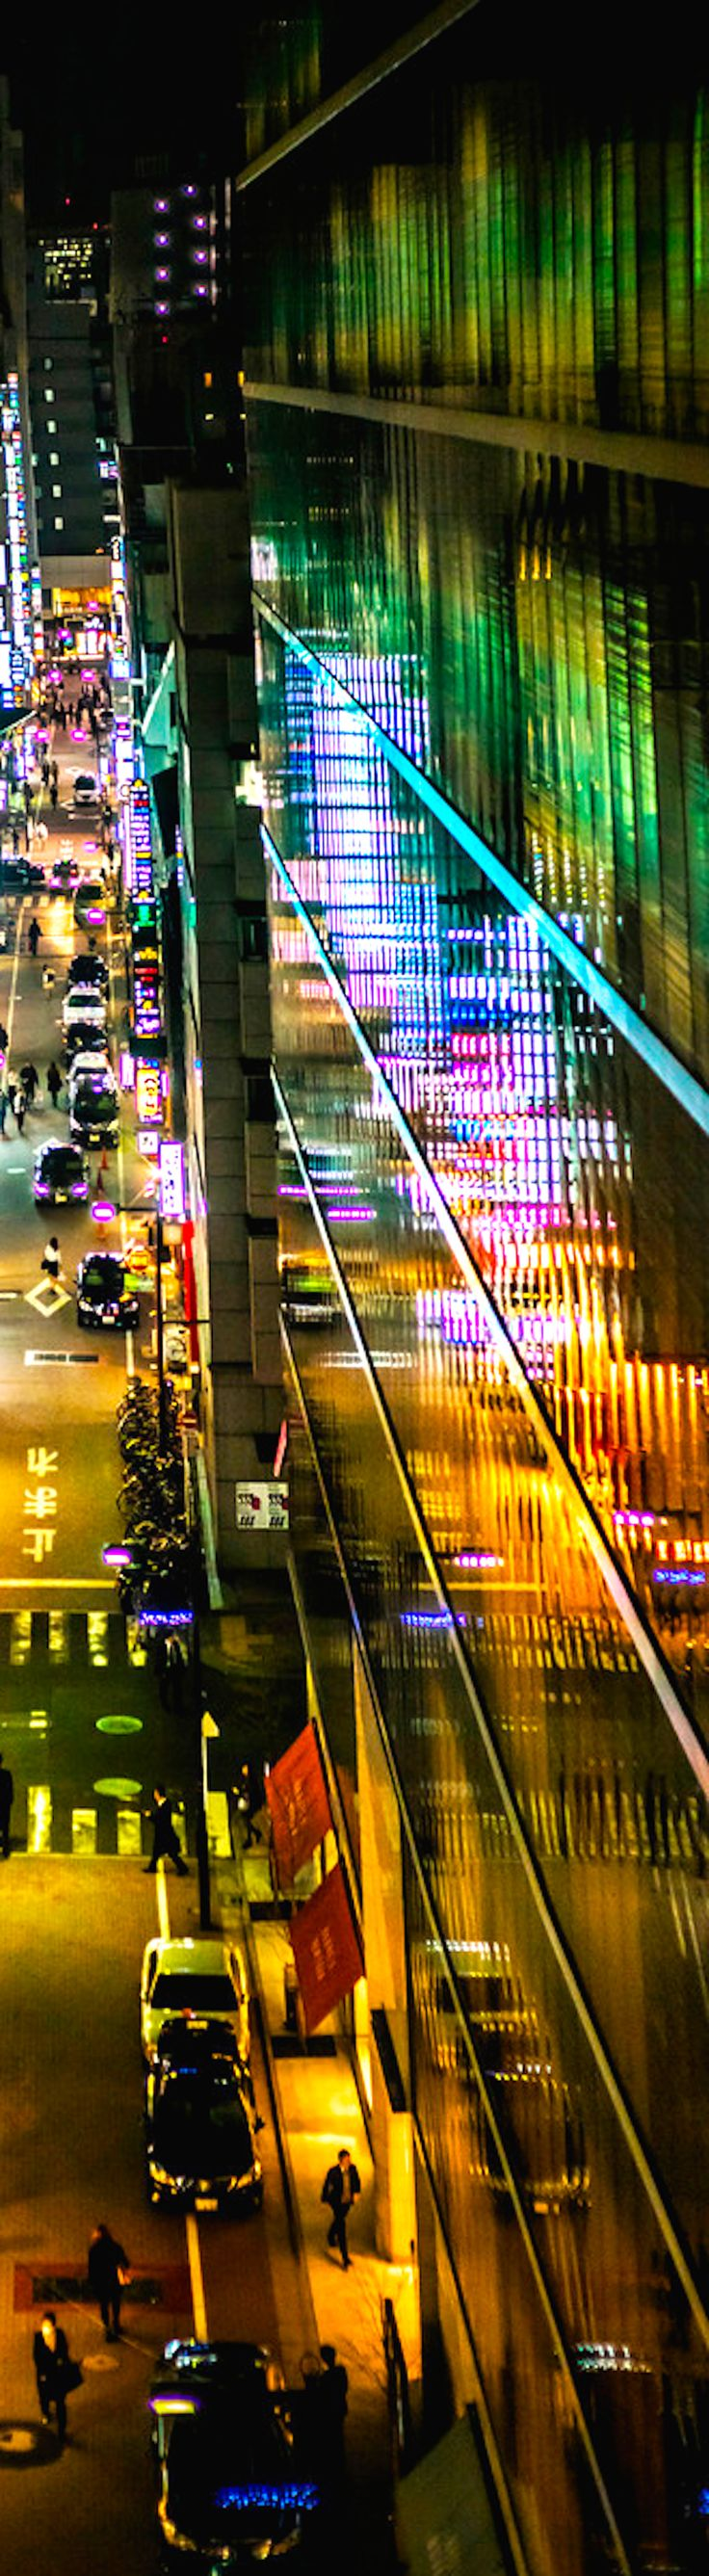 Tokyo- Ginza from 1955 to 1967 was one of my very favorite places for discos and night life. There were night clubs and discos that were fifty years ahead of their time in ultra modern designs.  (I was actually shocked beyond belief, being I came from New York City).  I have been all over the world and 2016 you still will never find the ultra modern designs that existed in the Golden Ginza for night clubs and discos).